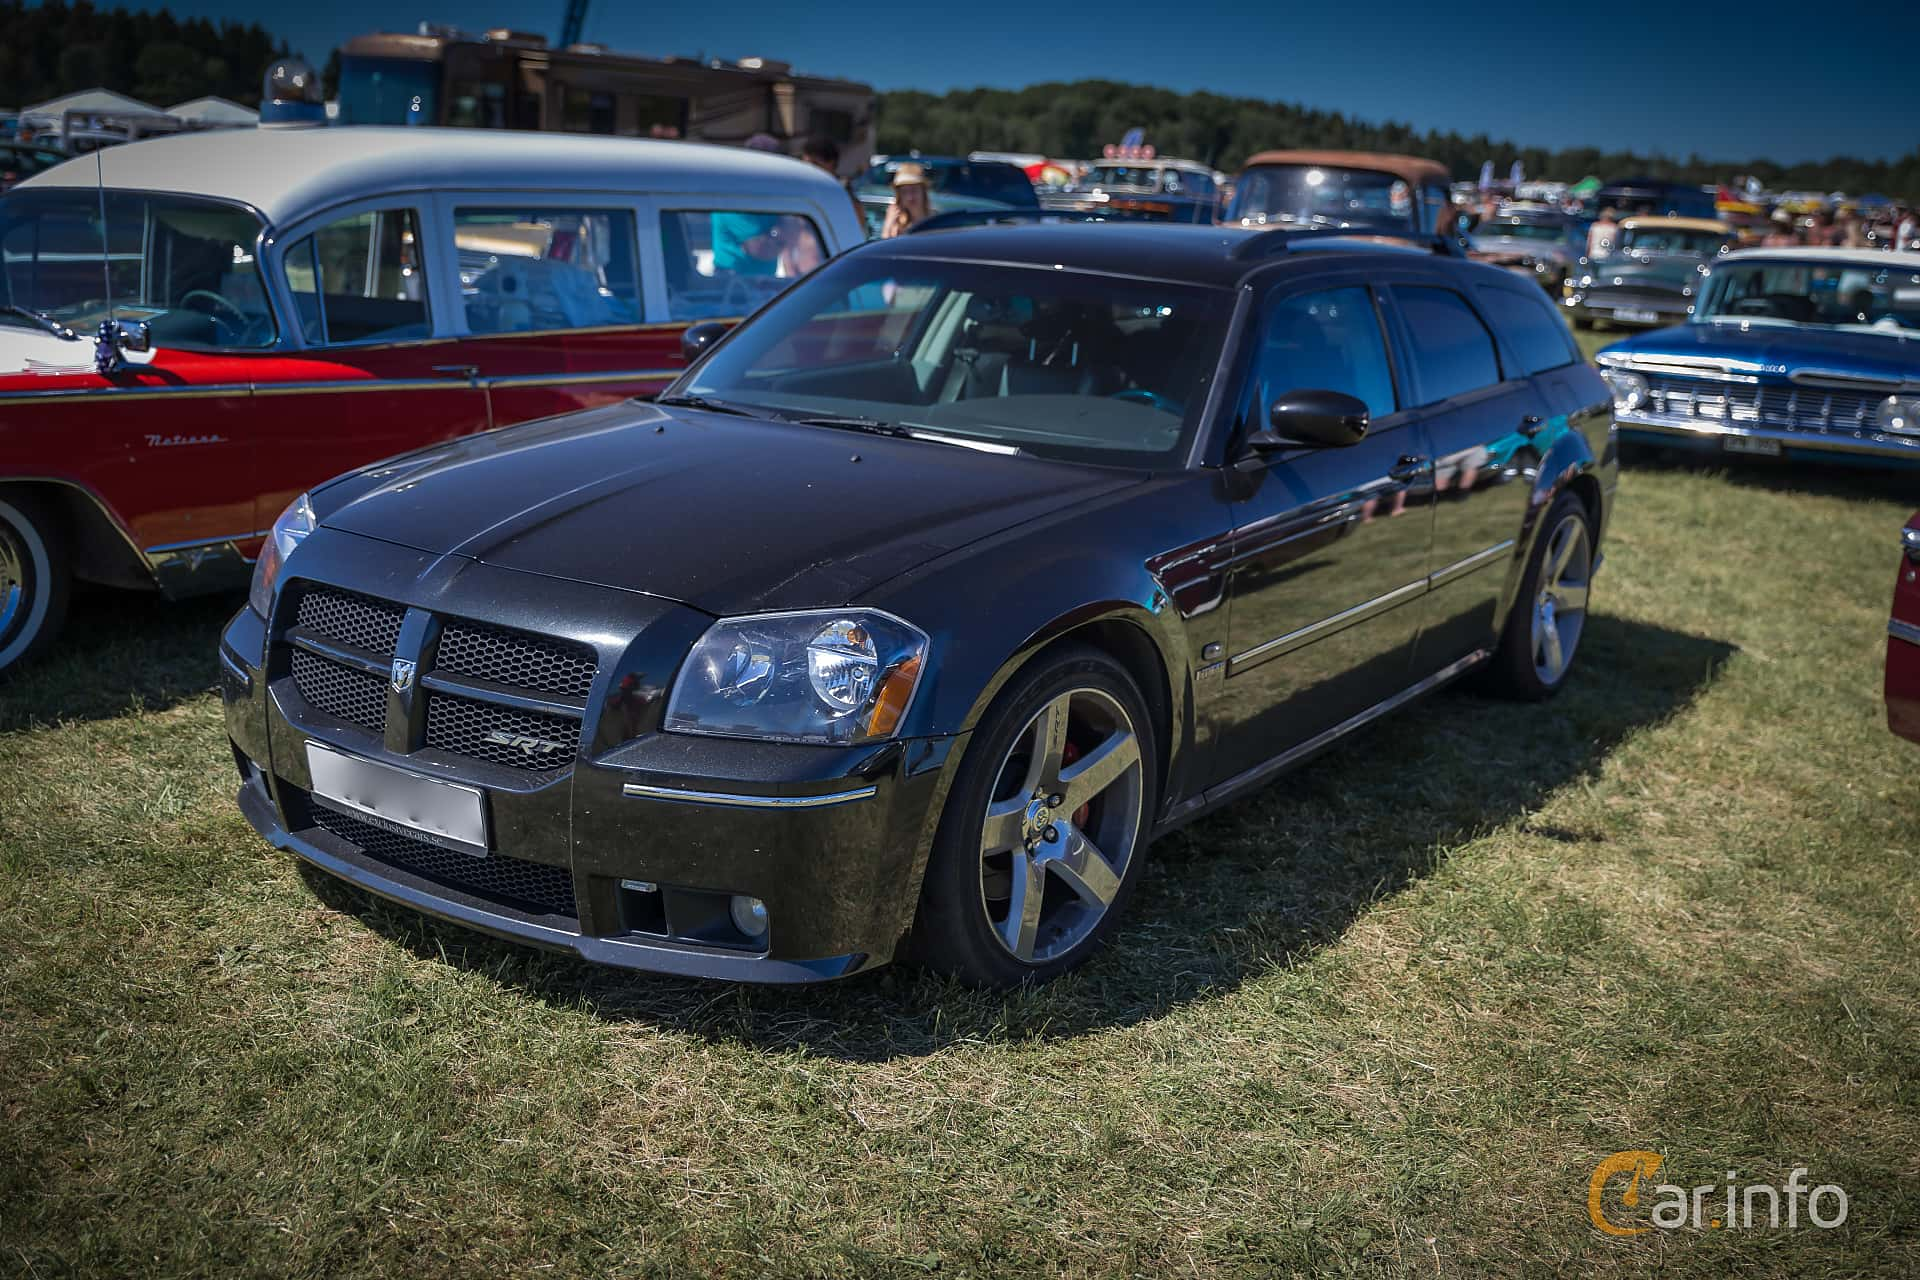 2015 Dodge Magnum >> 2 Images Of Dodge Magnum 6 1 V8 Hemi Automatic 431hp 2007